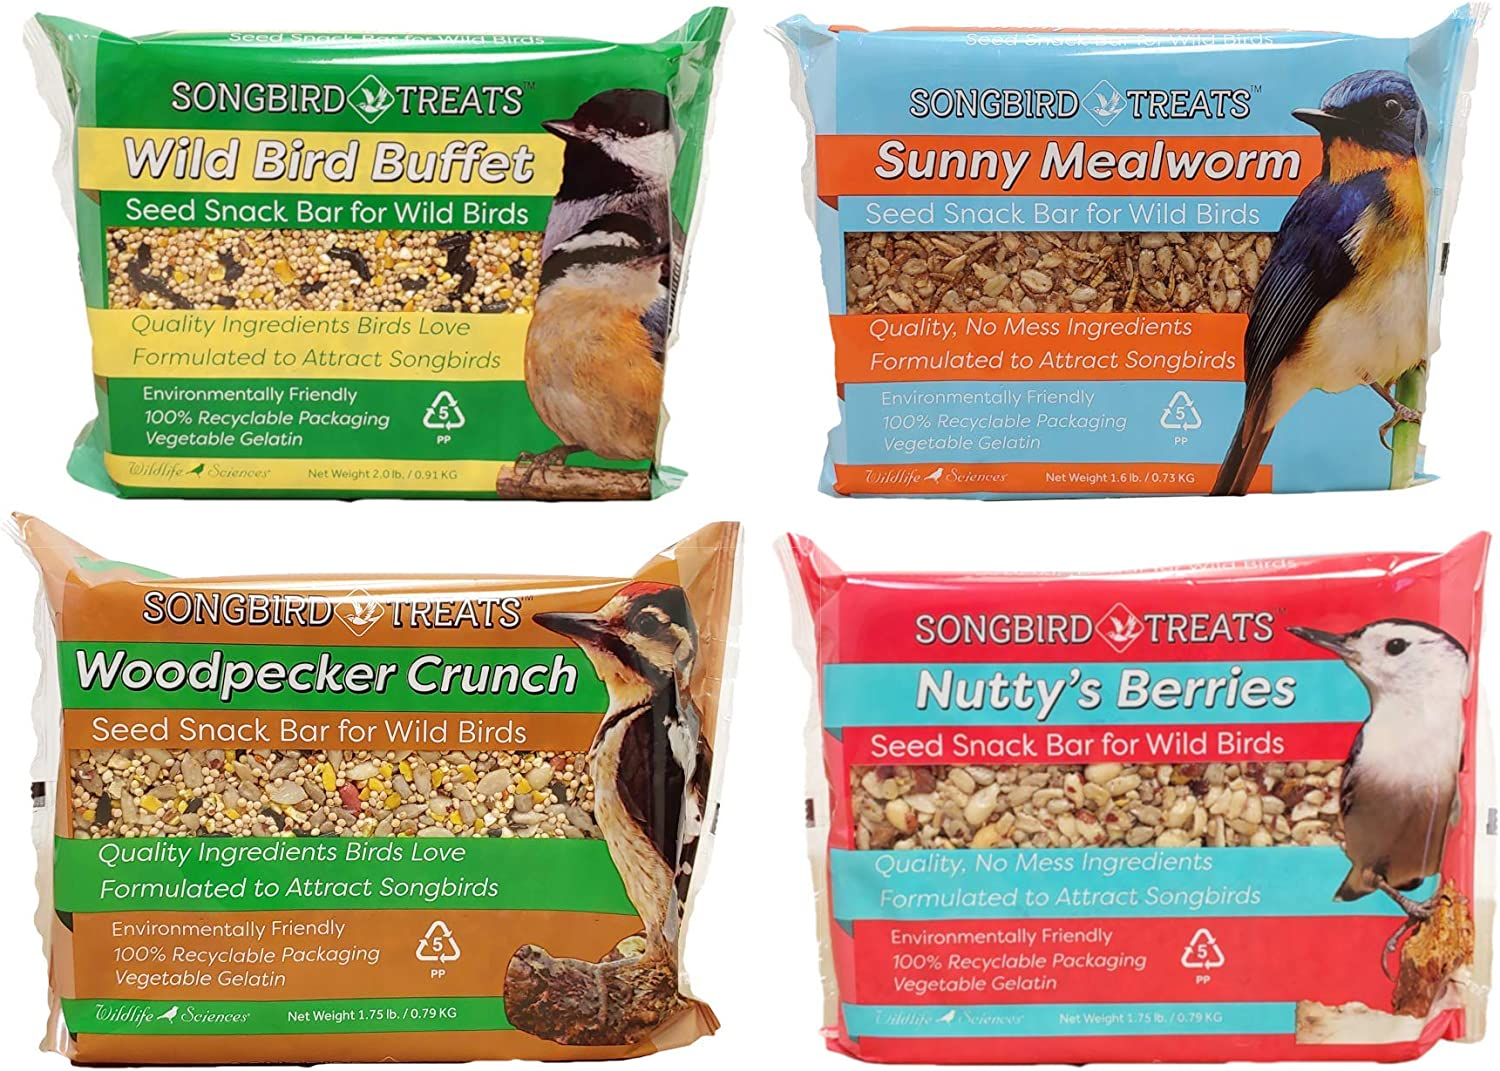 Songbird Treats Seed Cake Variety 4 Pack of Large Seed Cakes | 1.5-2 lb Large Bird Seed Cakes for Wild Birds